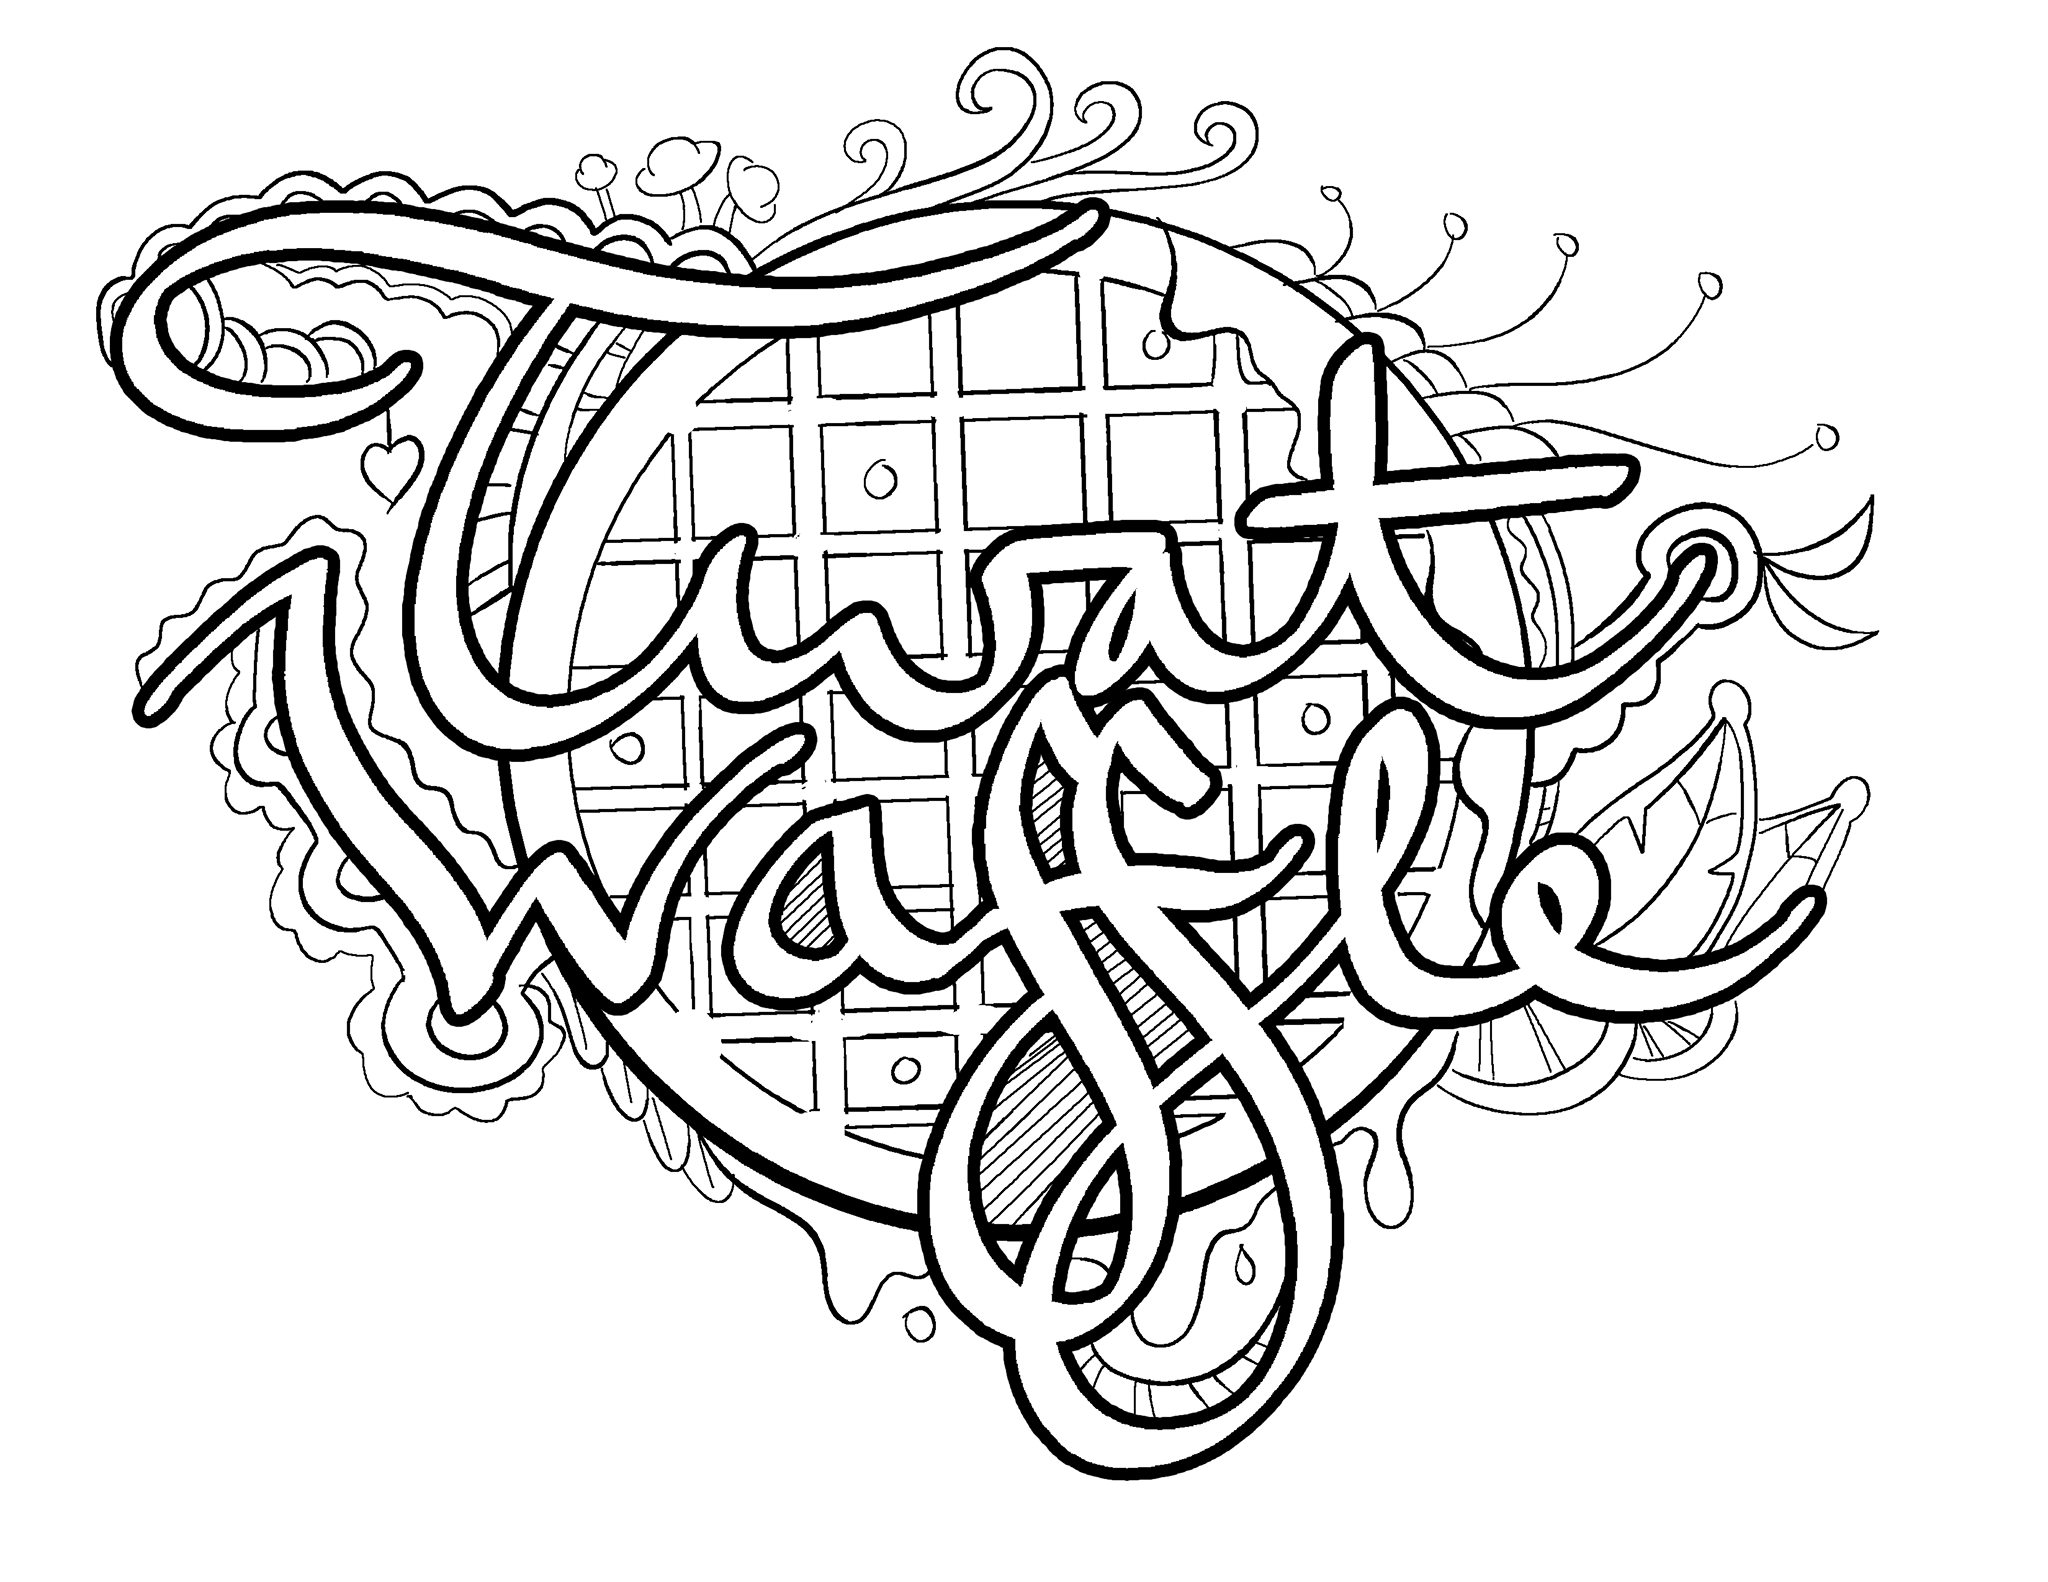 waffle coloring page waffle colouring pages sketch coloring page page coloring waffle